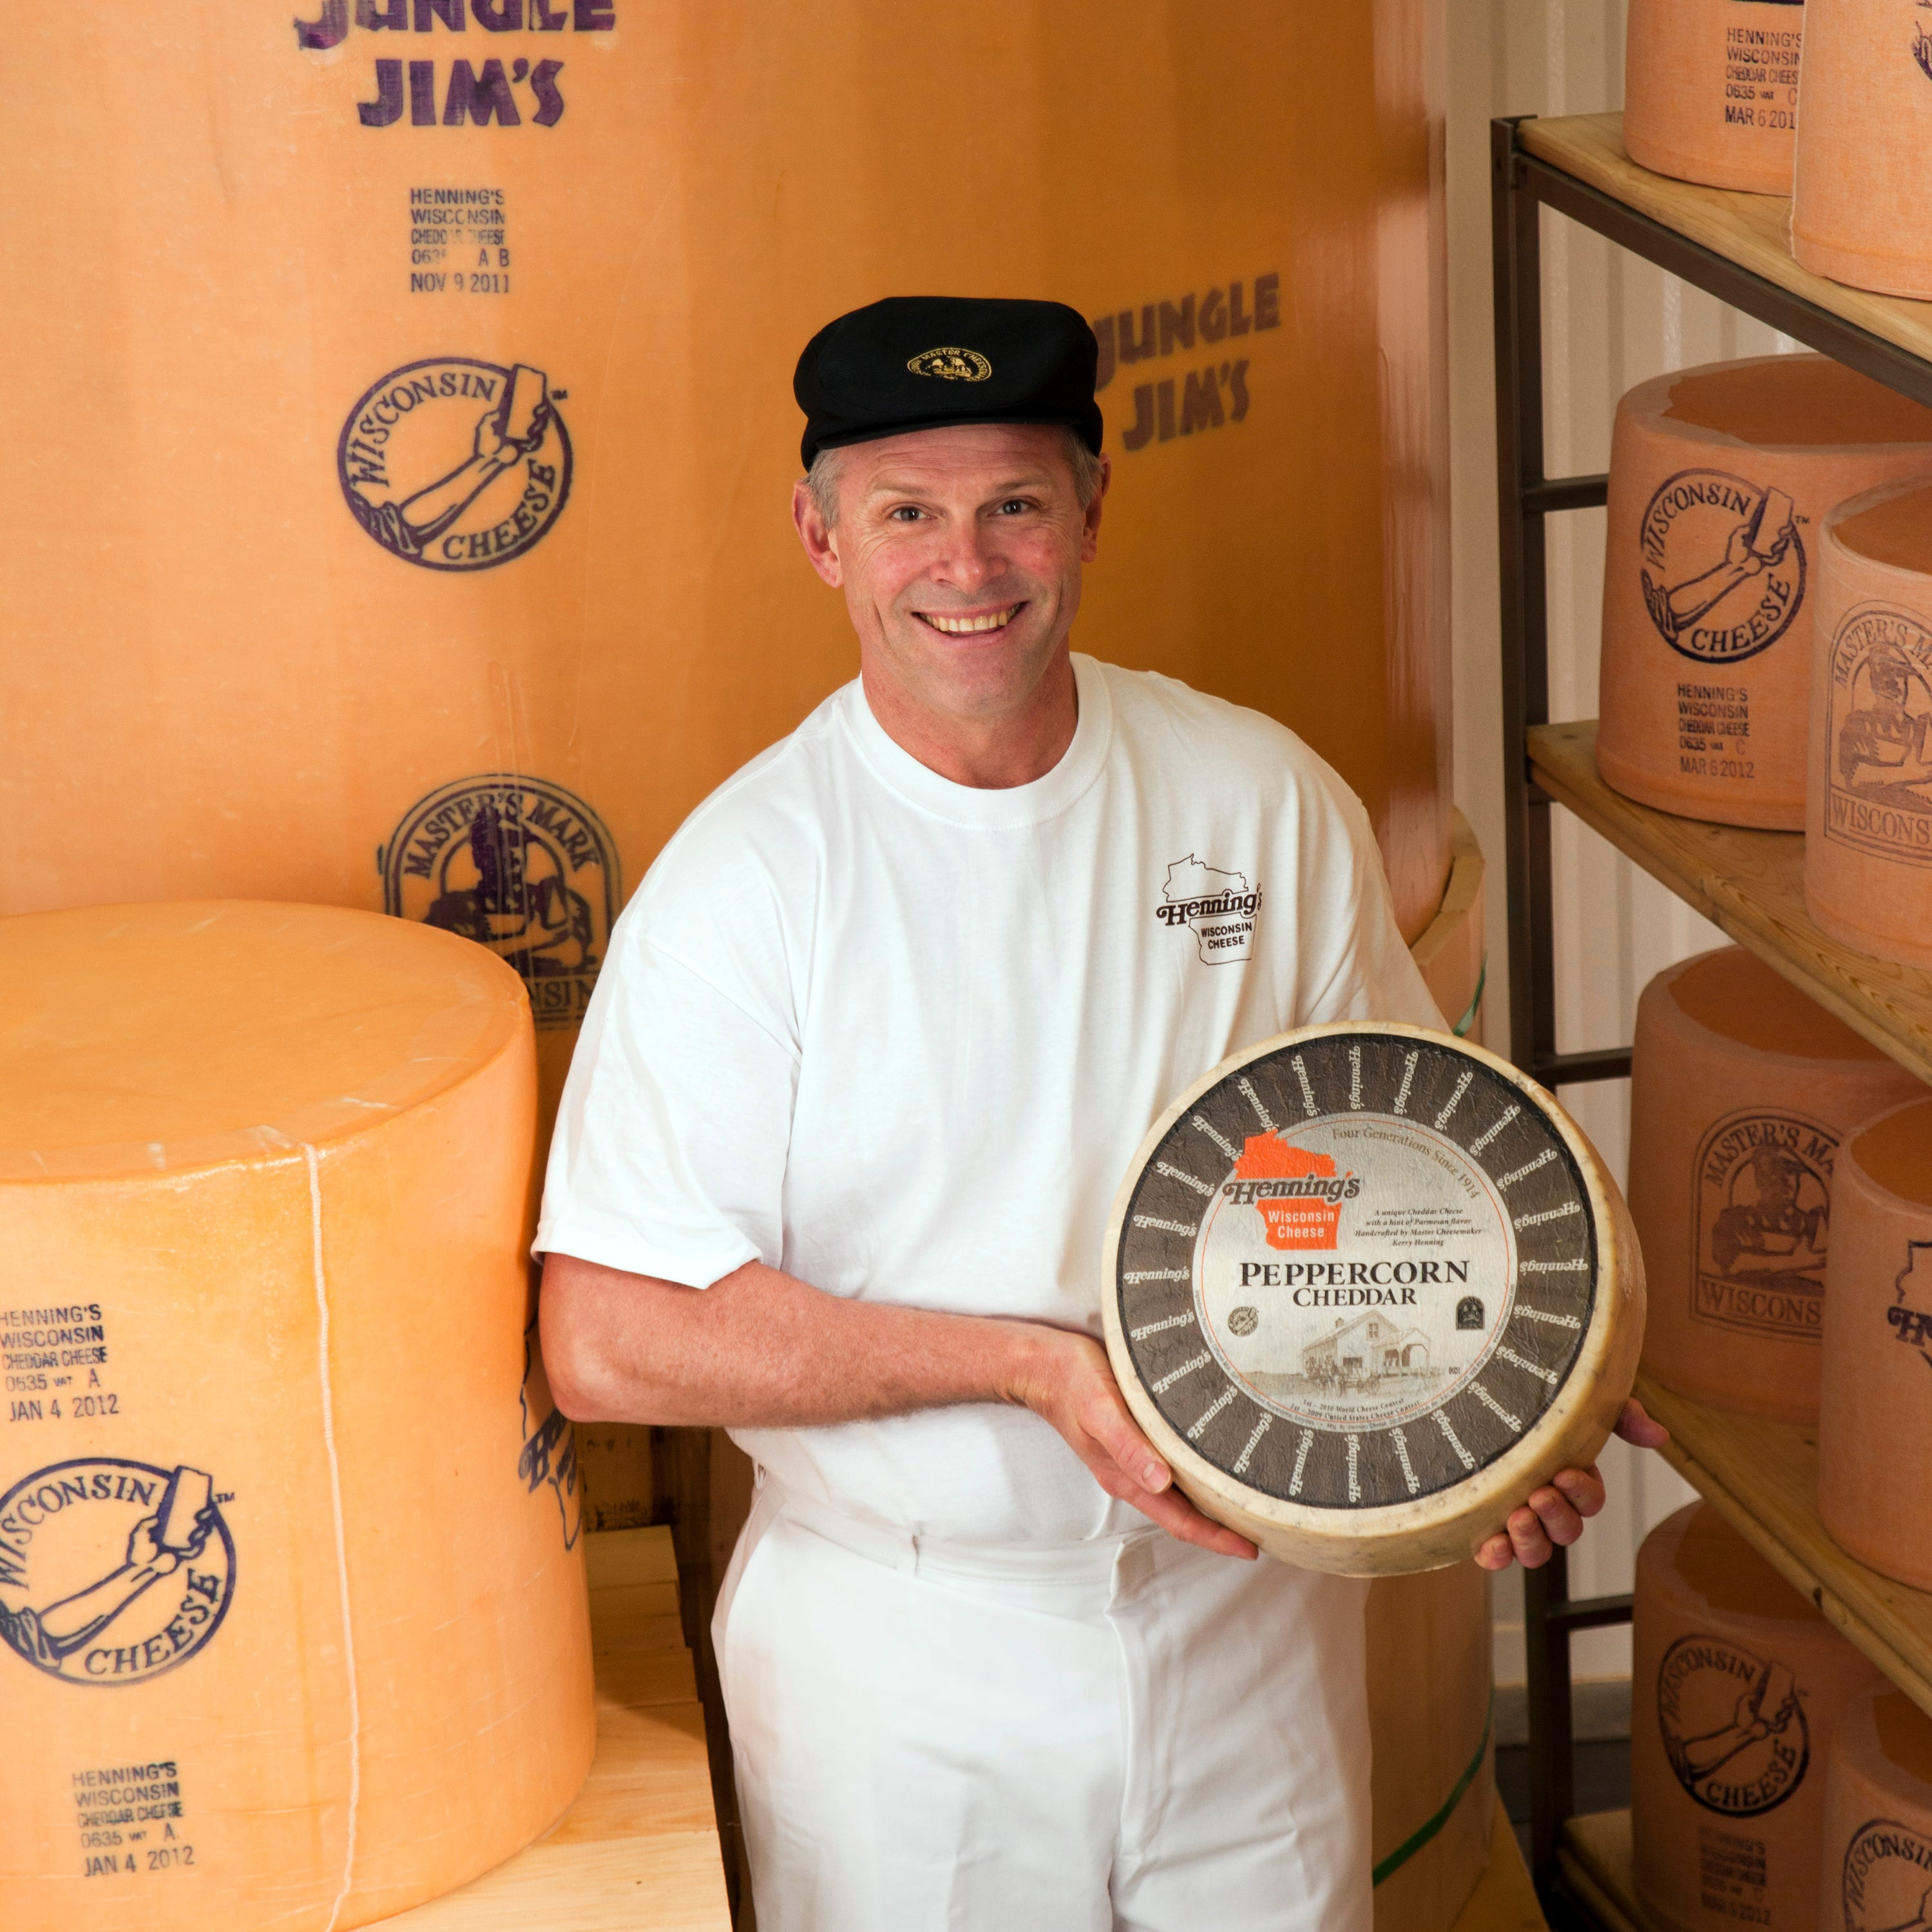 Making cheese, especially cheddar, is a family tradition at Henning's Wisconsin Cheese in Kiel